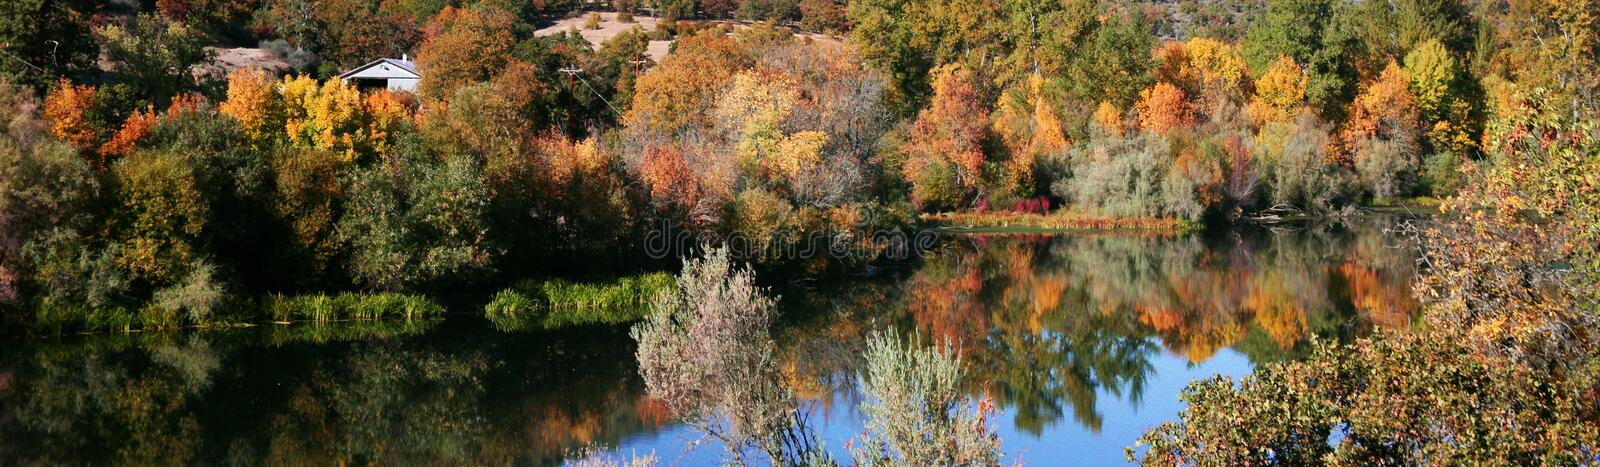 Download Fall Colors stock image. Image of autumn, september, landscape - 1407065